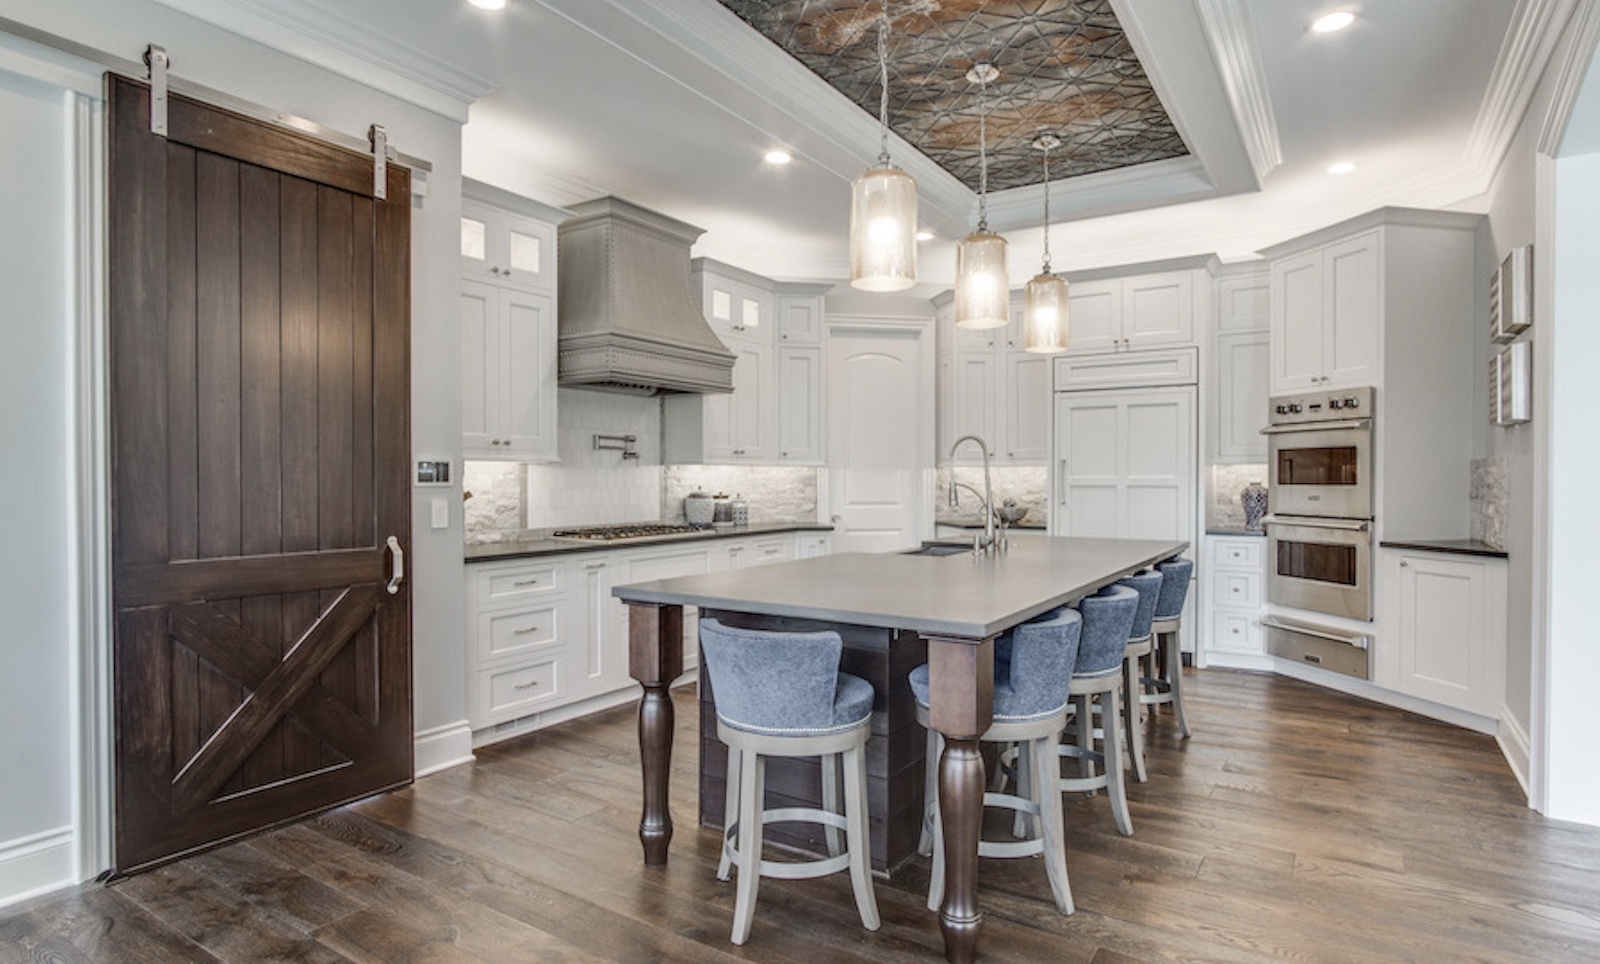 The kitchen in Jaime, designed by TK Design & Associates